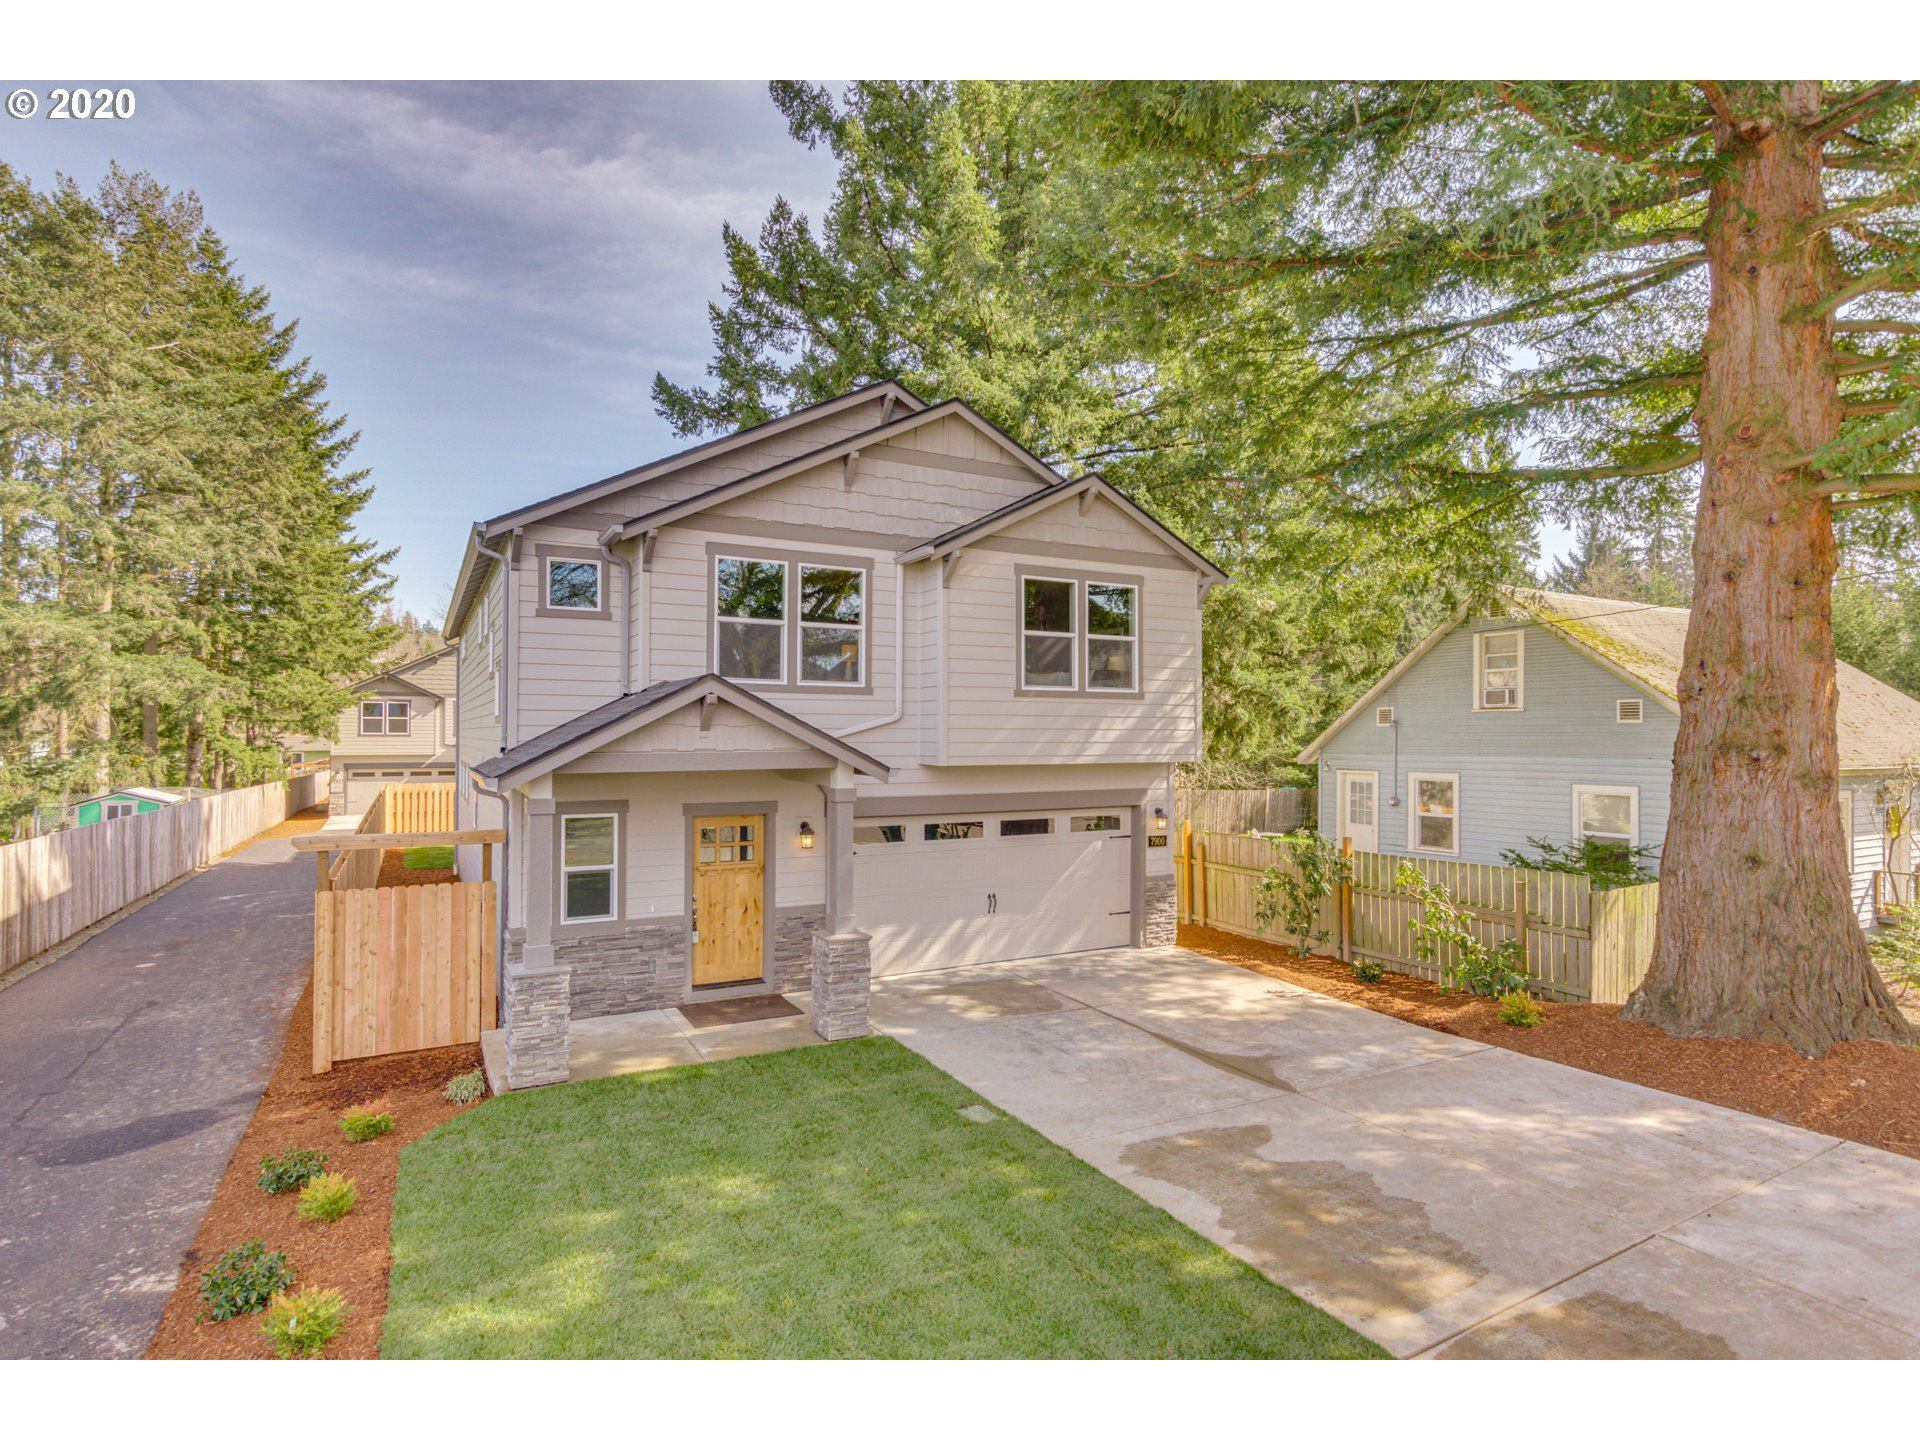 7900 SW 67TH AVE, Portland, OR 97223 - MLS#: 20616508